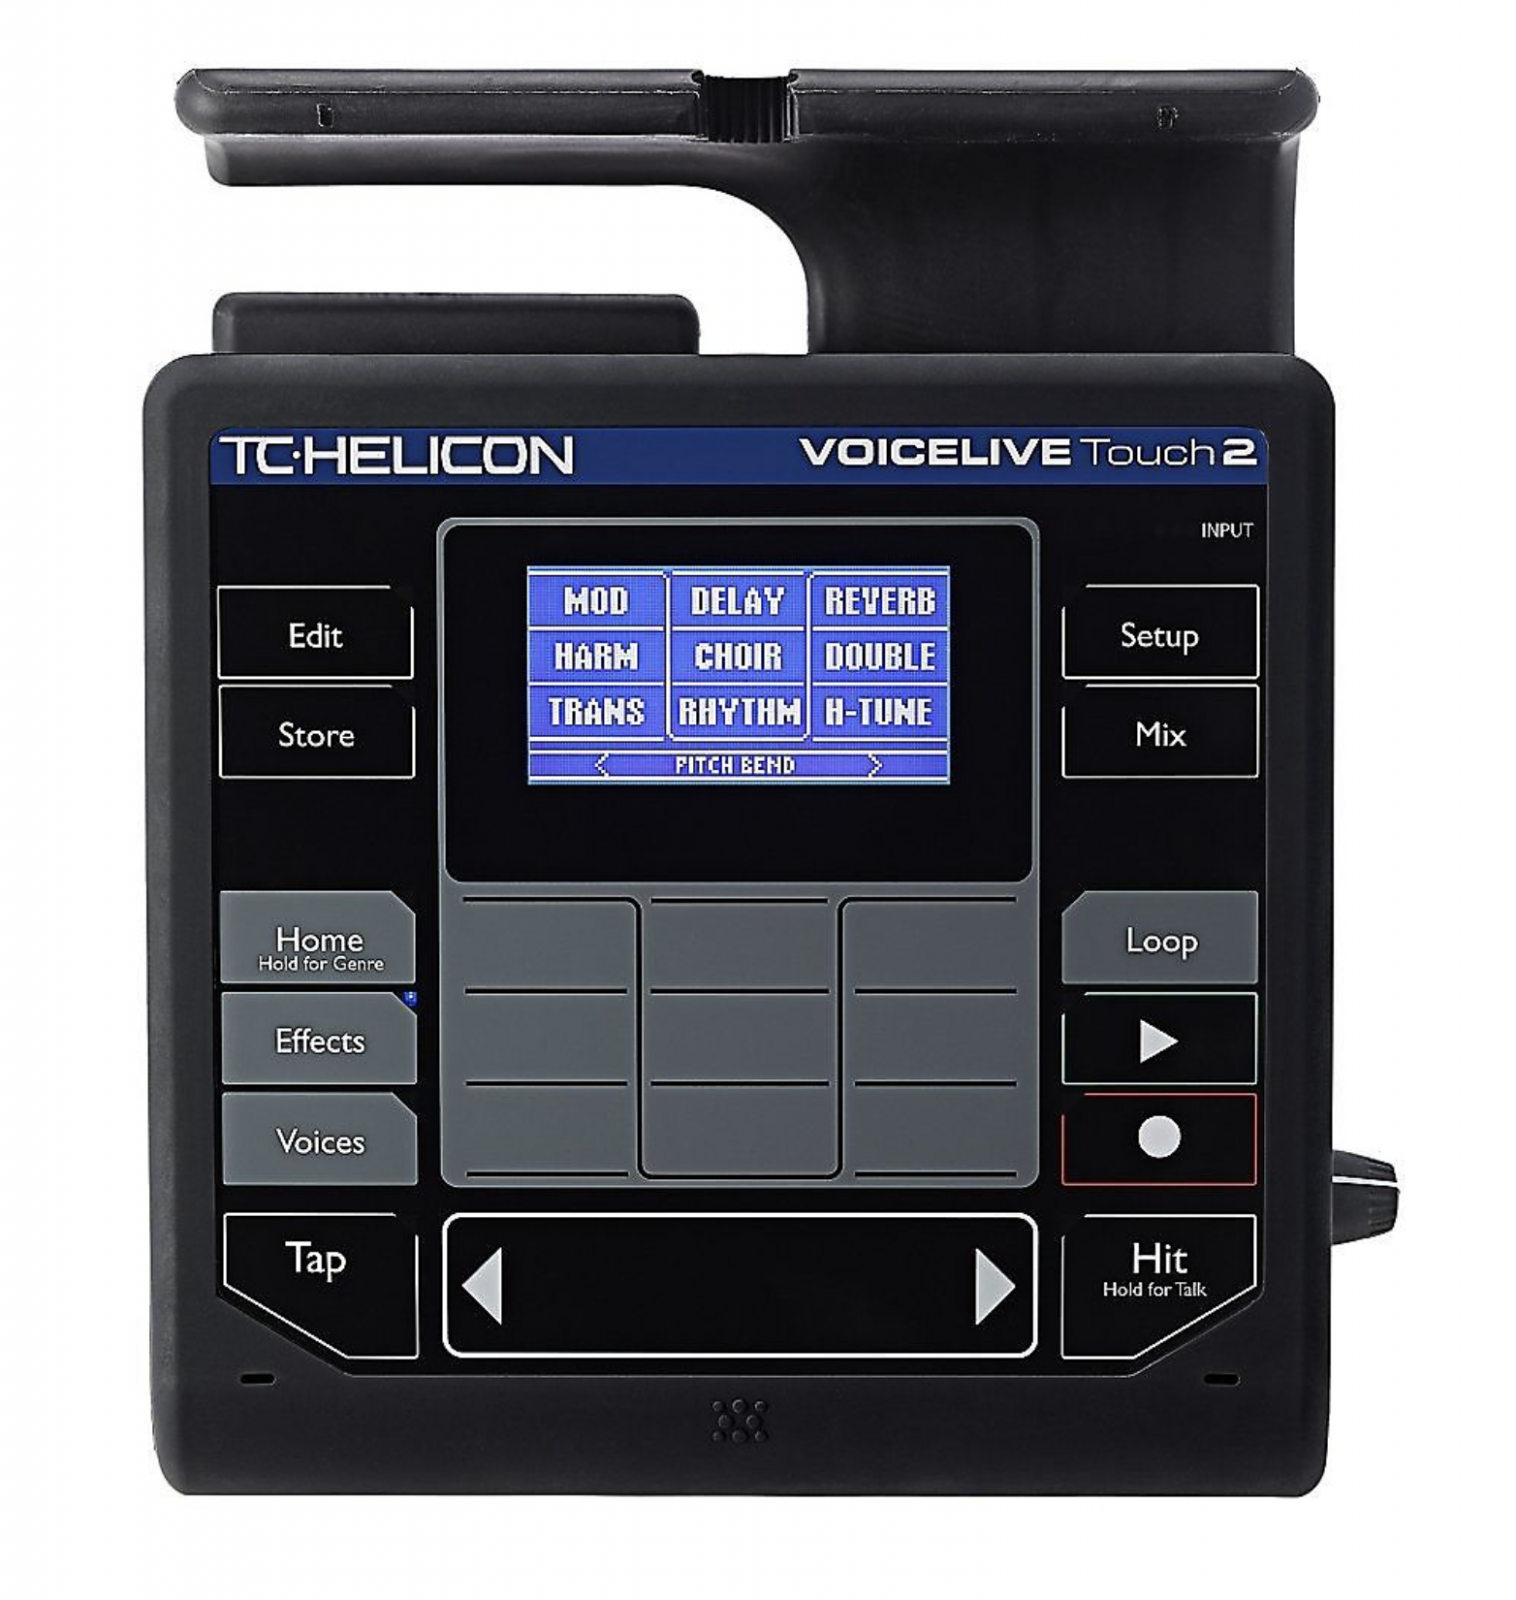 TC HELICON VOICELIVE TOUCH 2 VOCAL EFFECTS PROCESSOR (996358005)